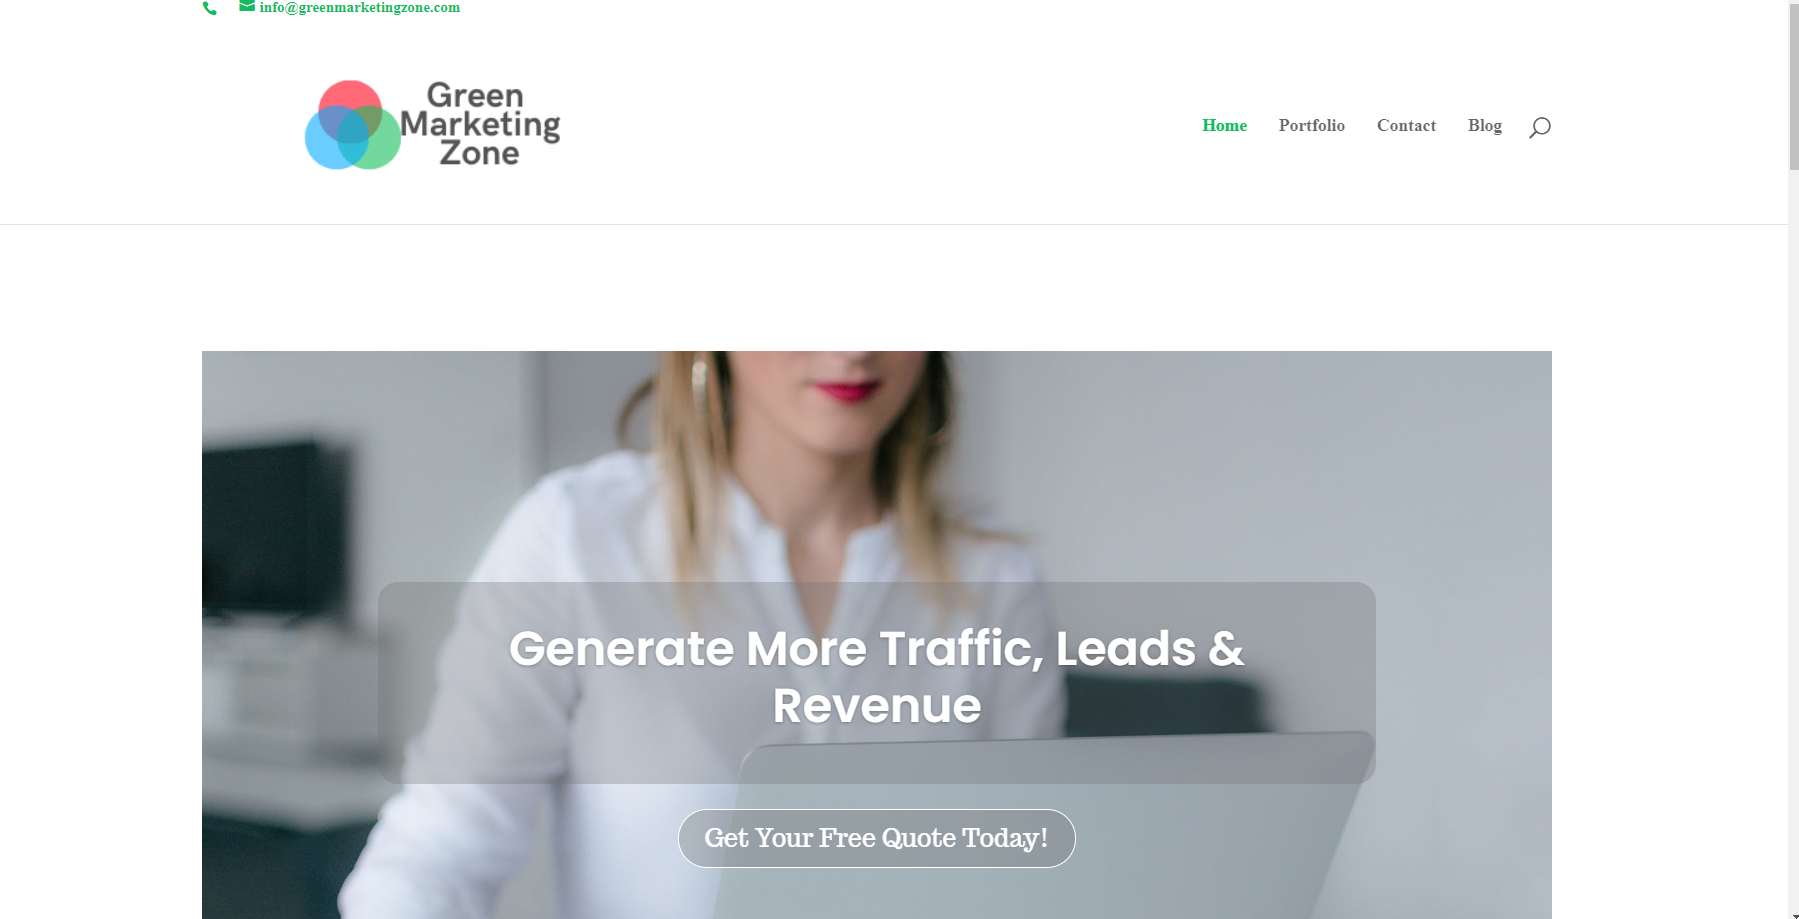 greenmarketingaone